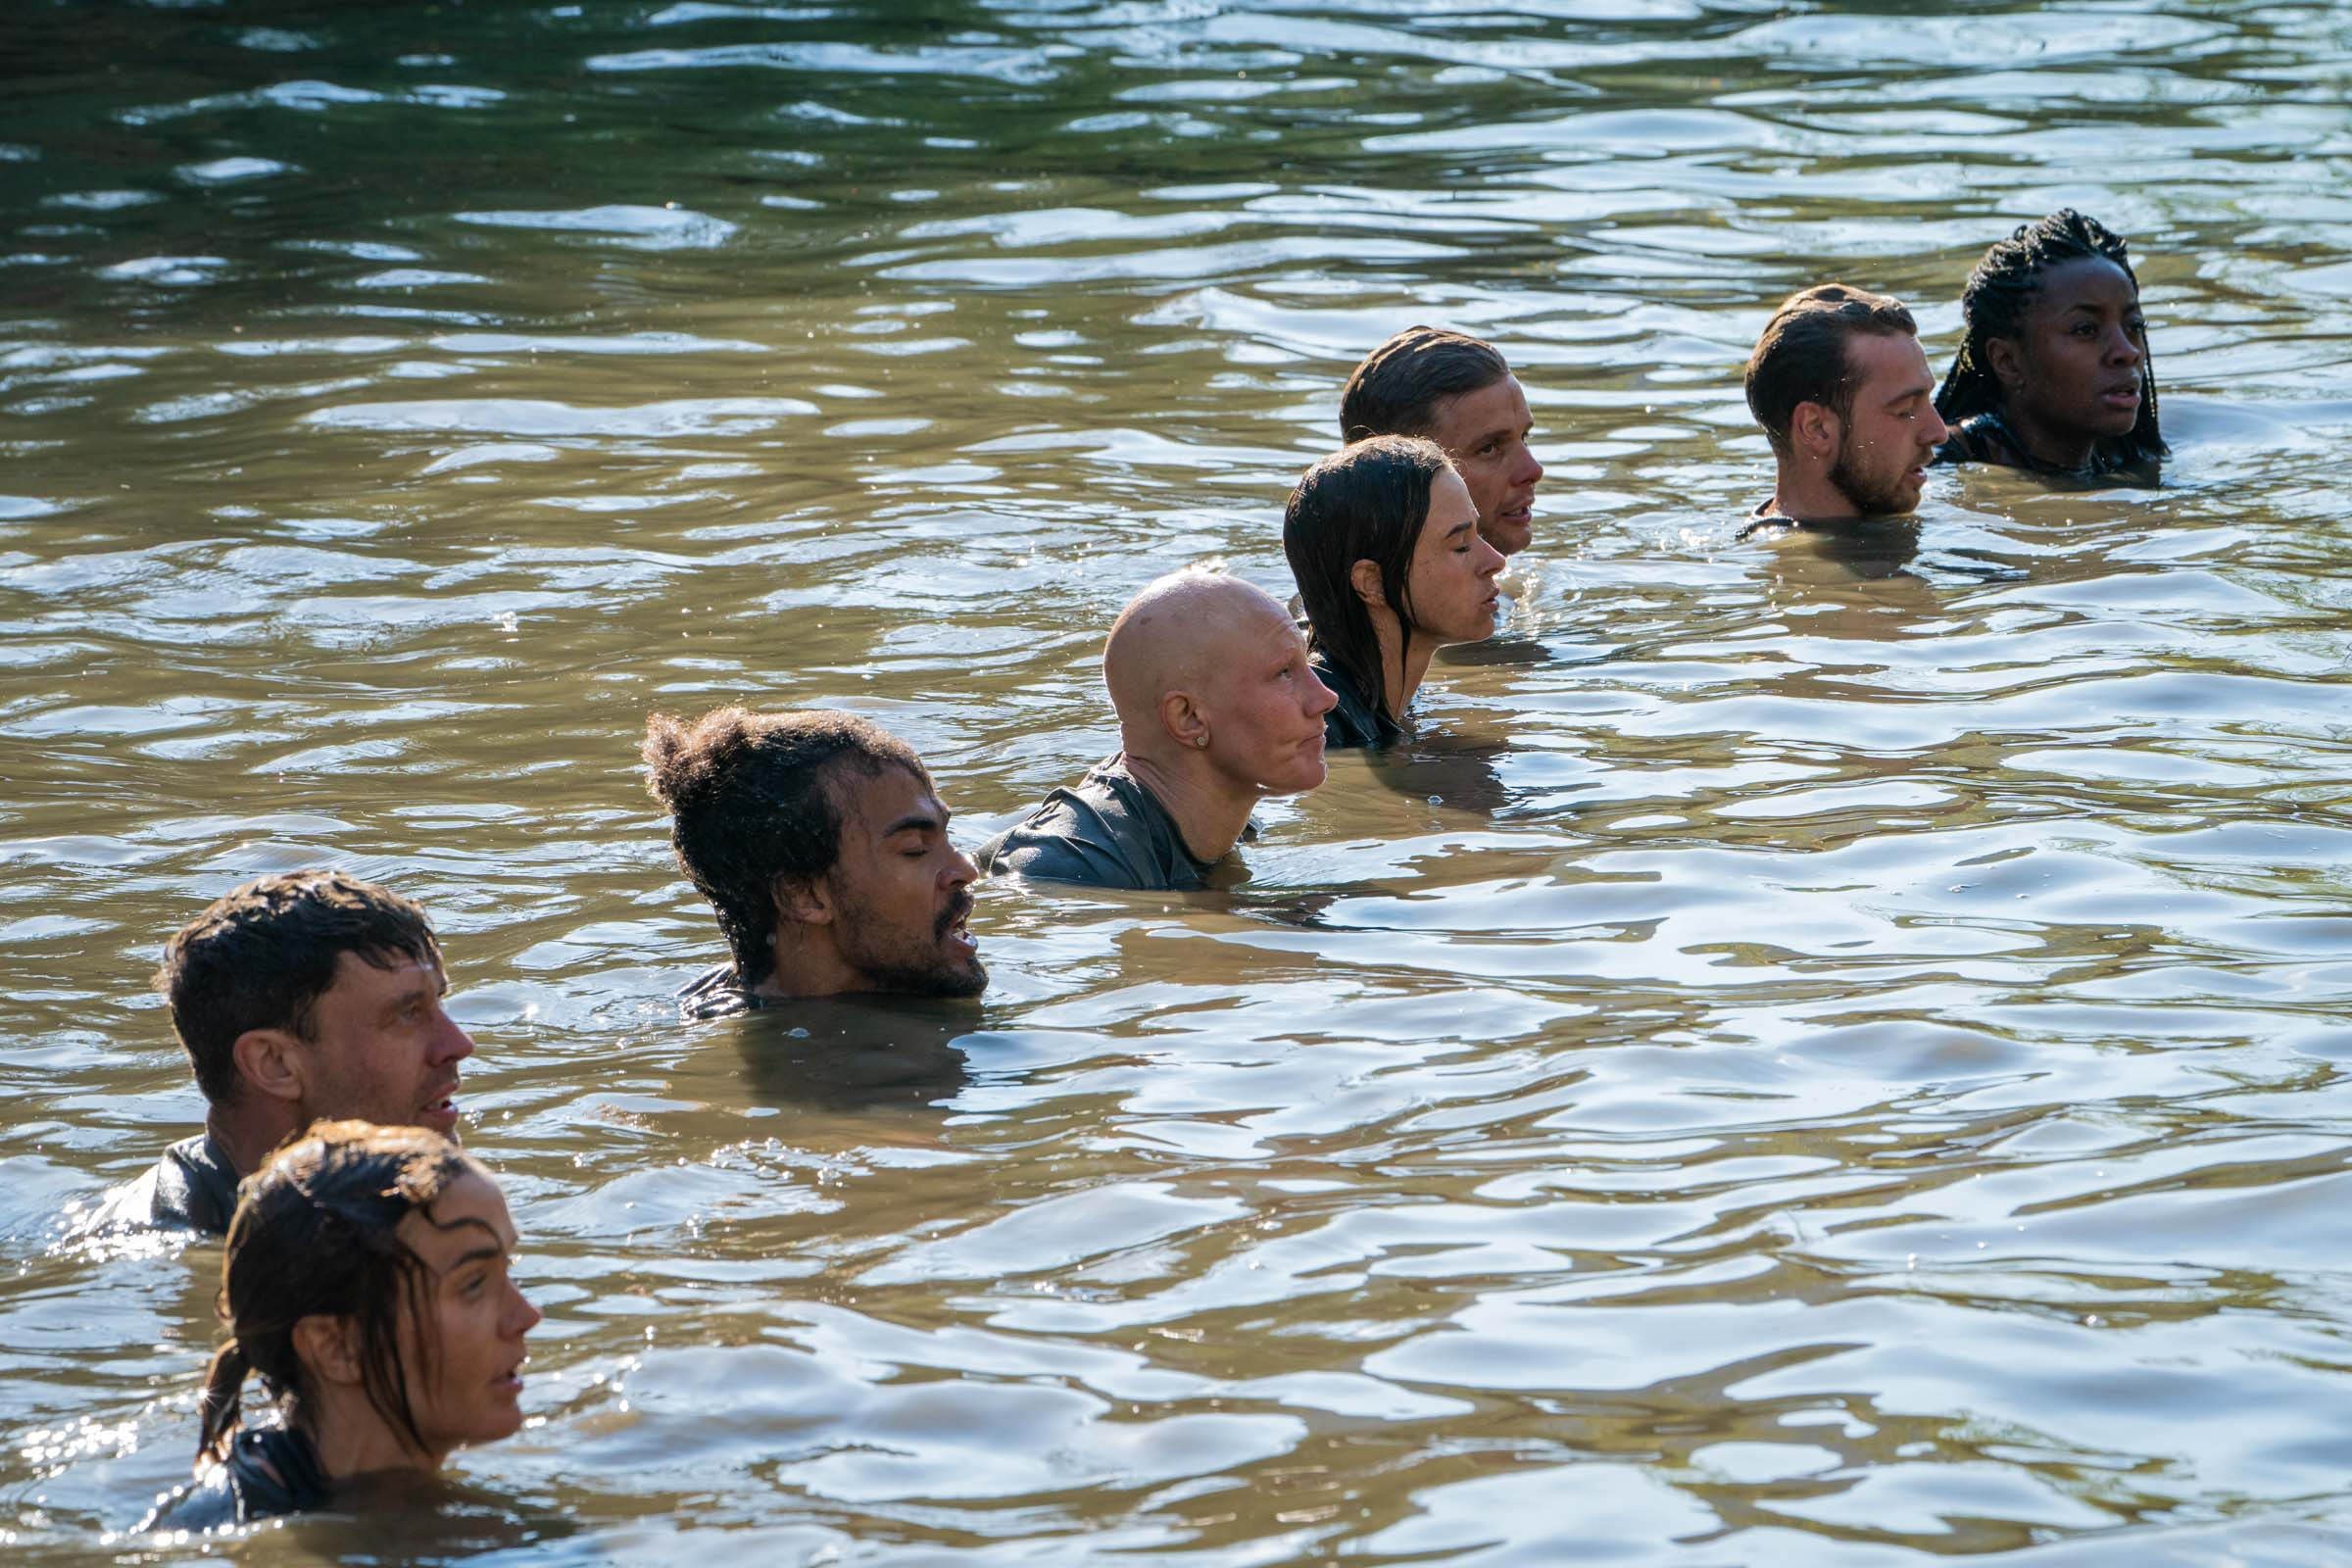 The Recruits submerge themselves during Water Butts  Episode 2  Minnow Films / Channel 4